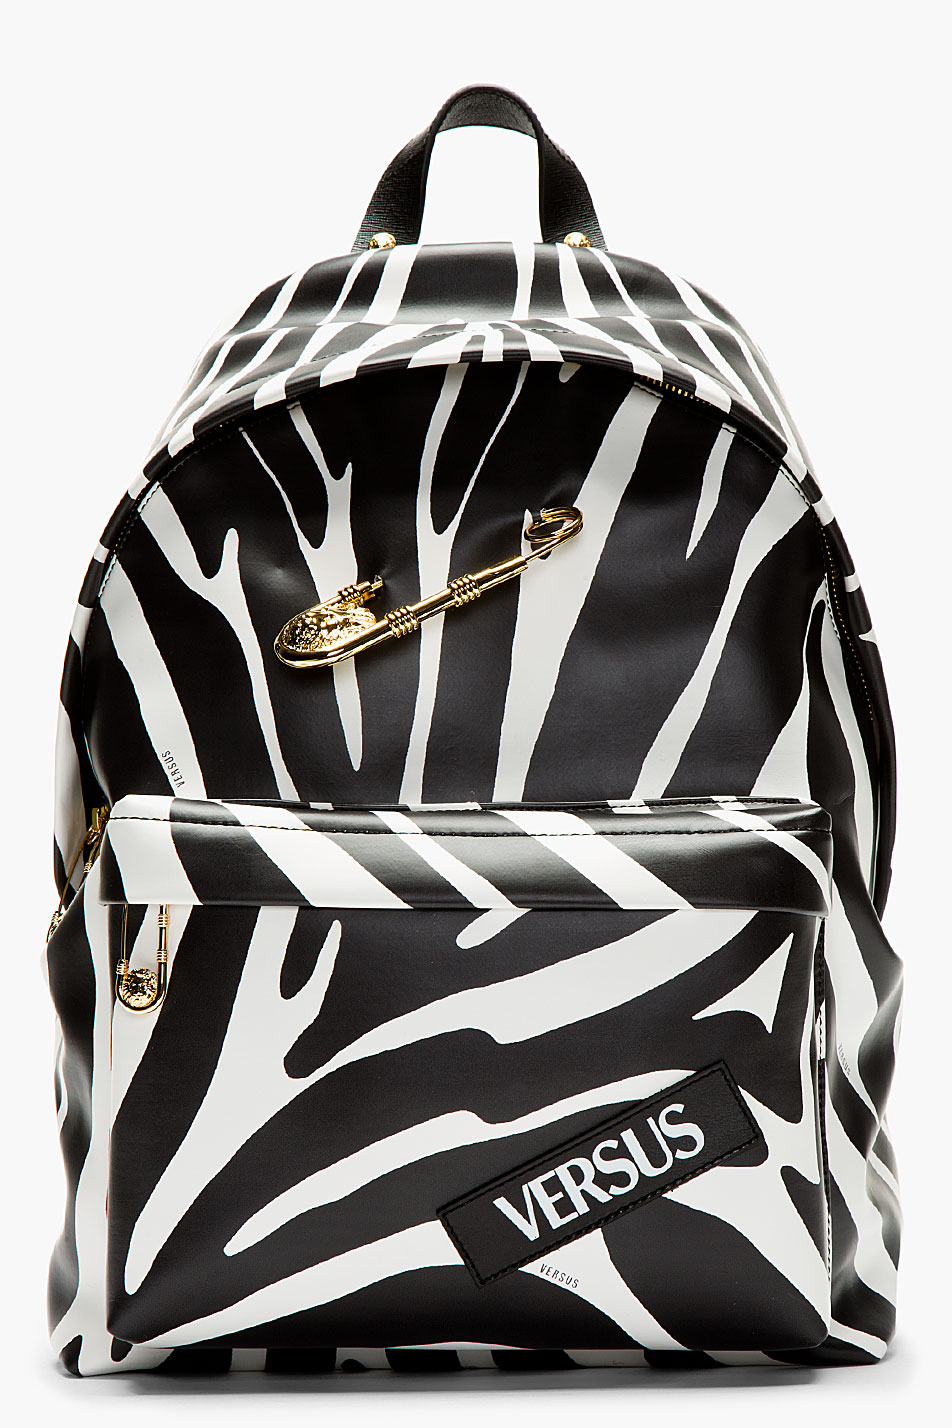 Zebra Print × Safety Pin backpack versus